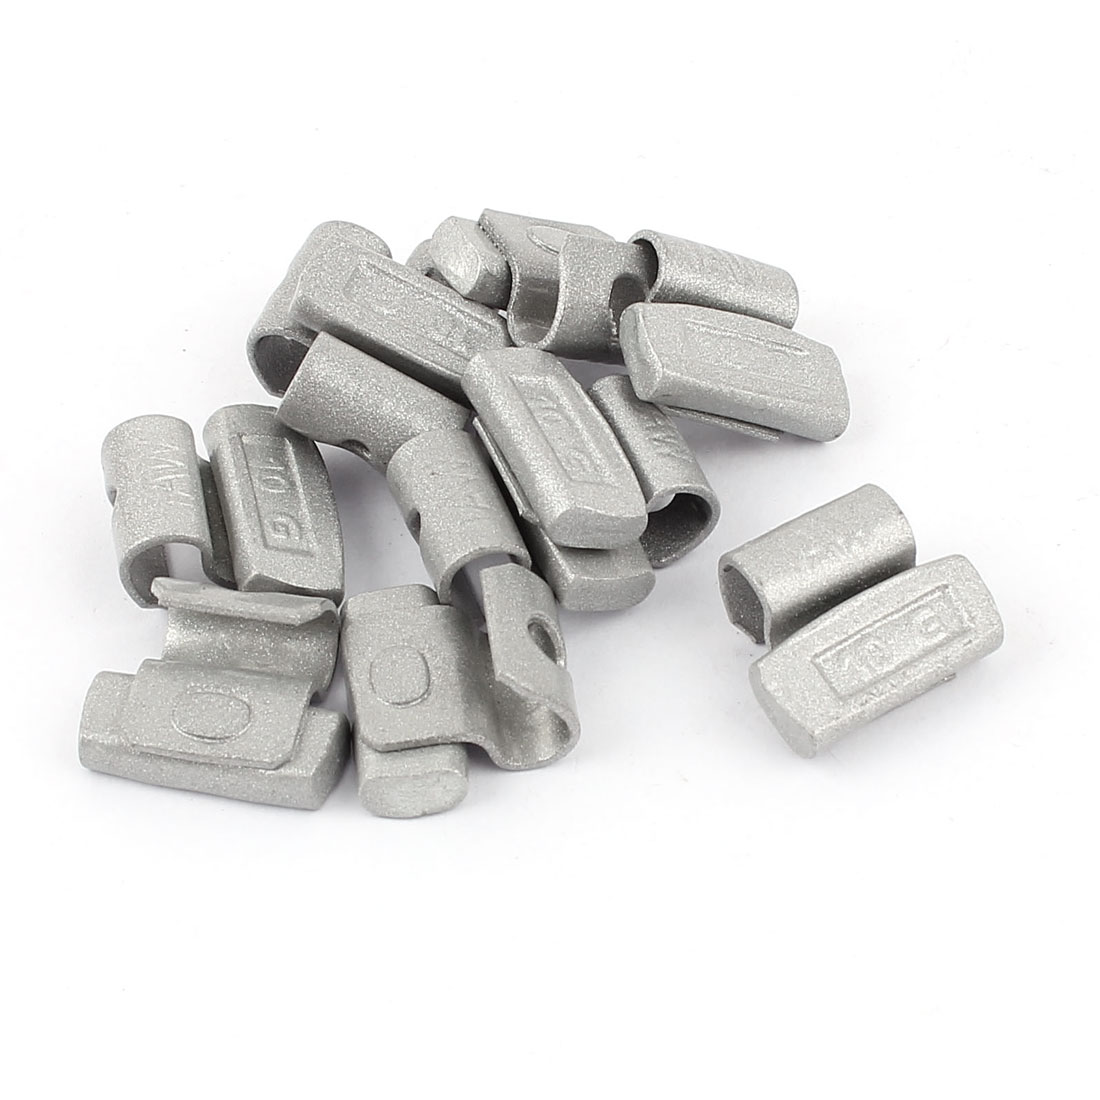 10 Pcs 10g Clip Tire Tyre Wheel Balance Weights for Car Alloy Rim